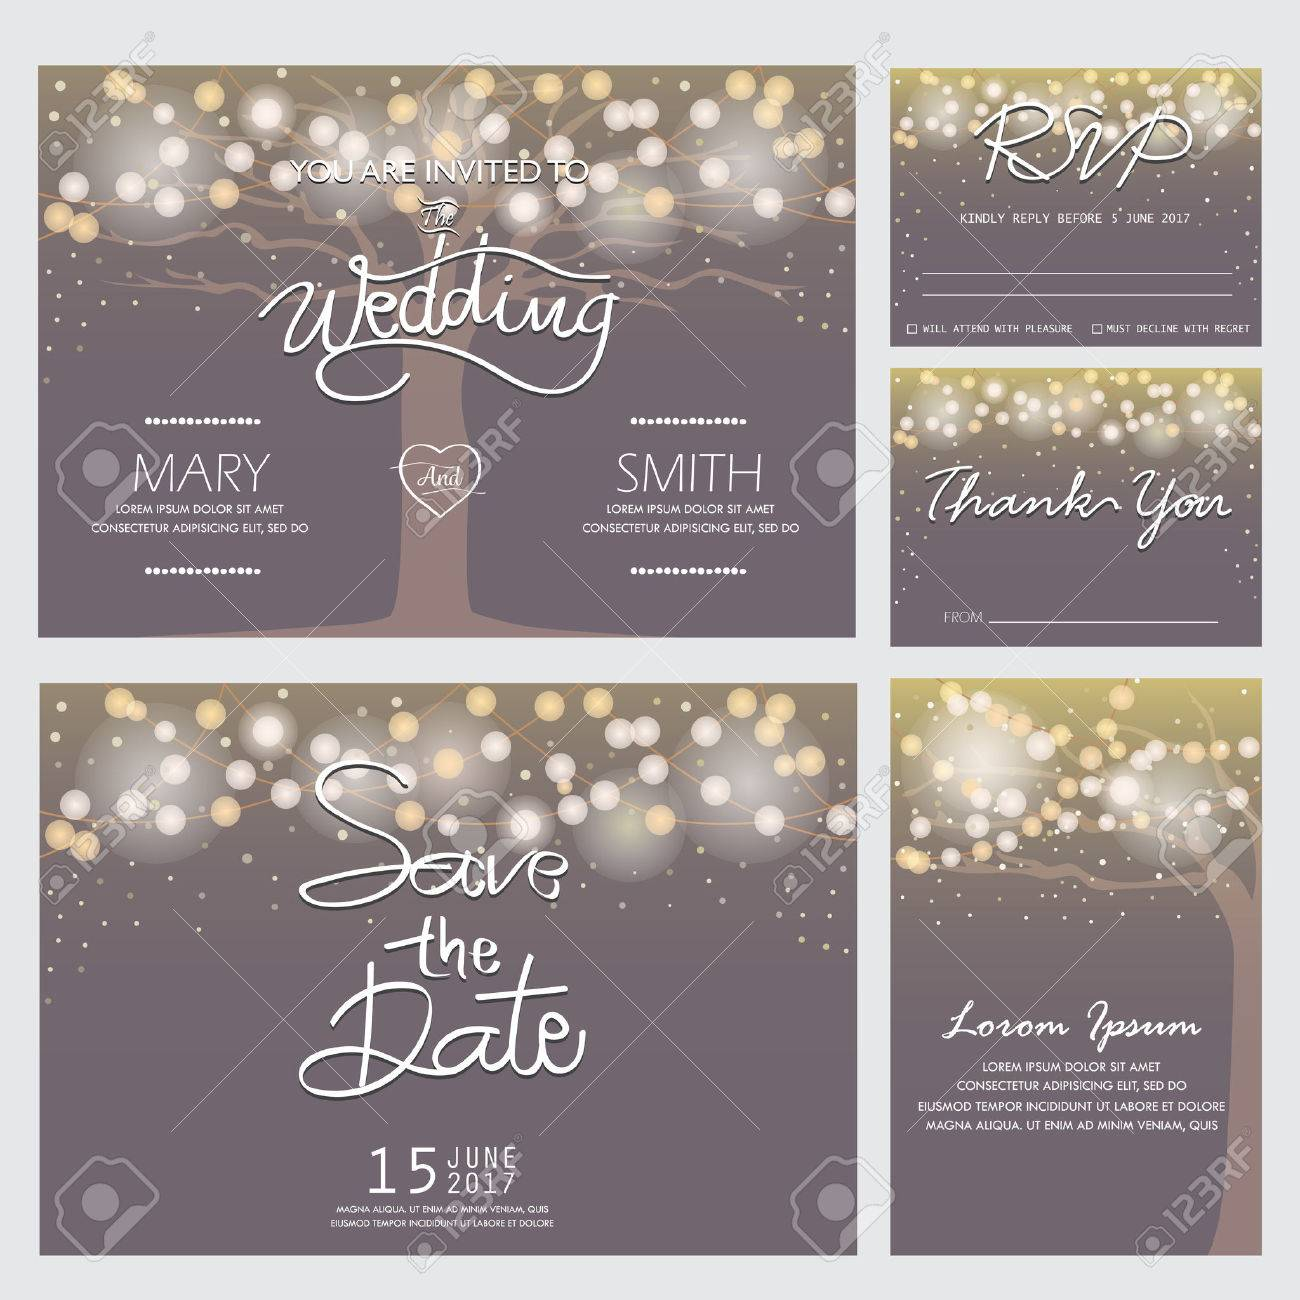 Wedding Invitation, RSVP, And Thank You Card Templates,light ...